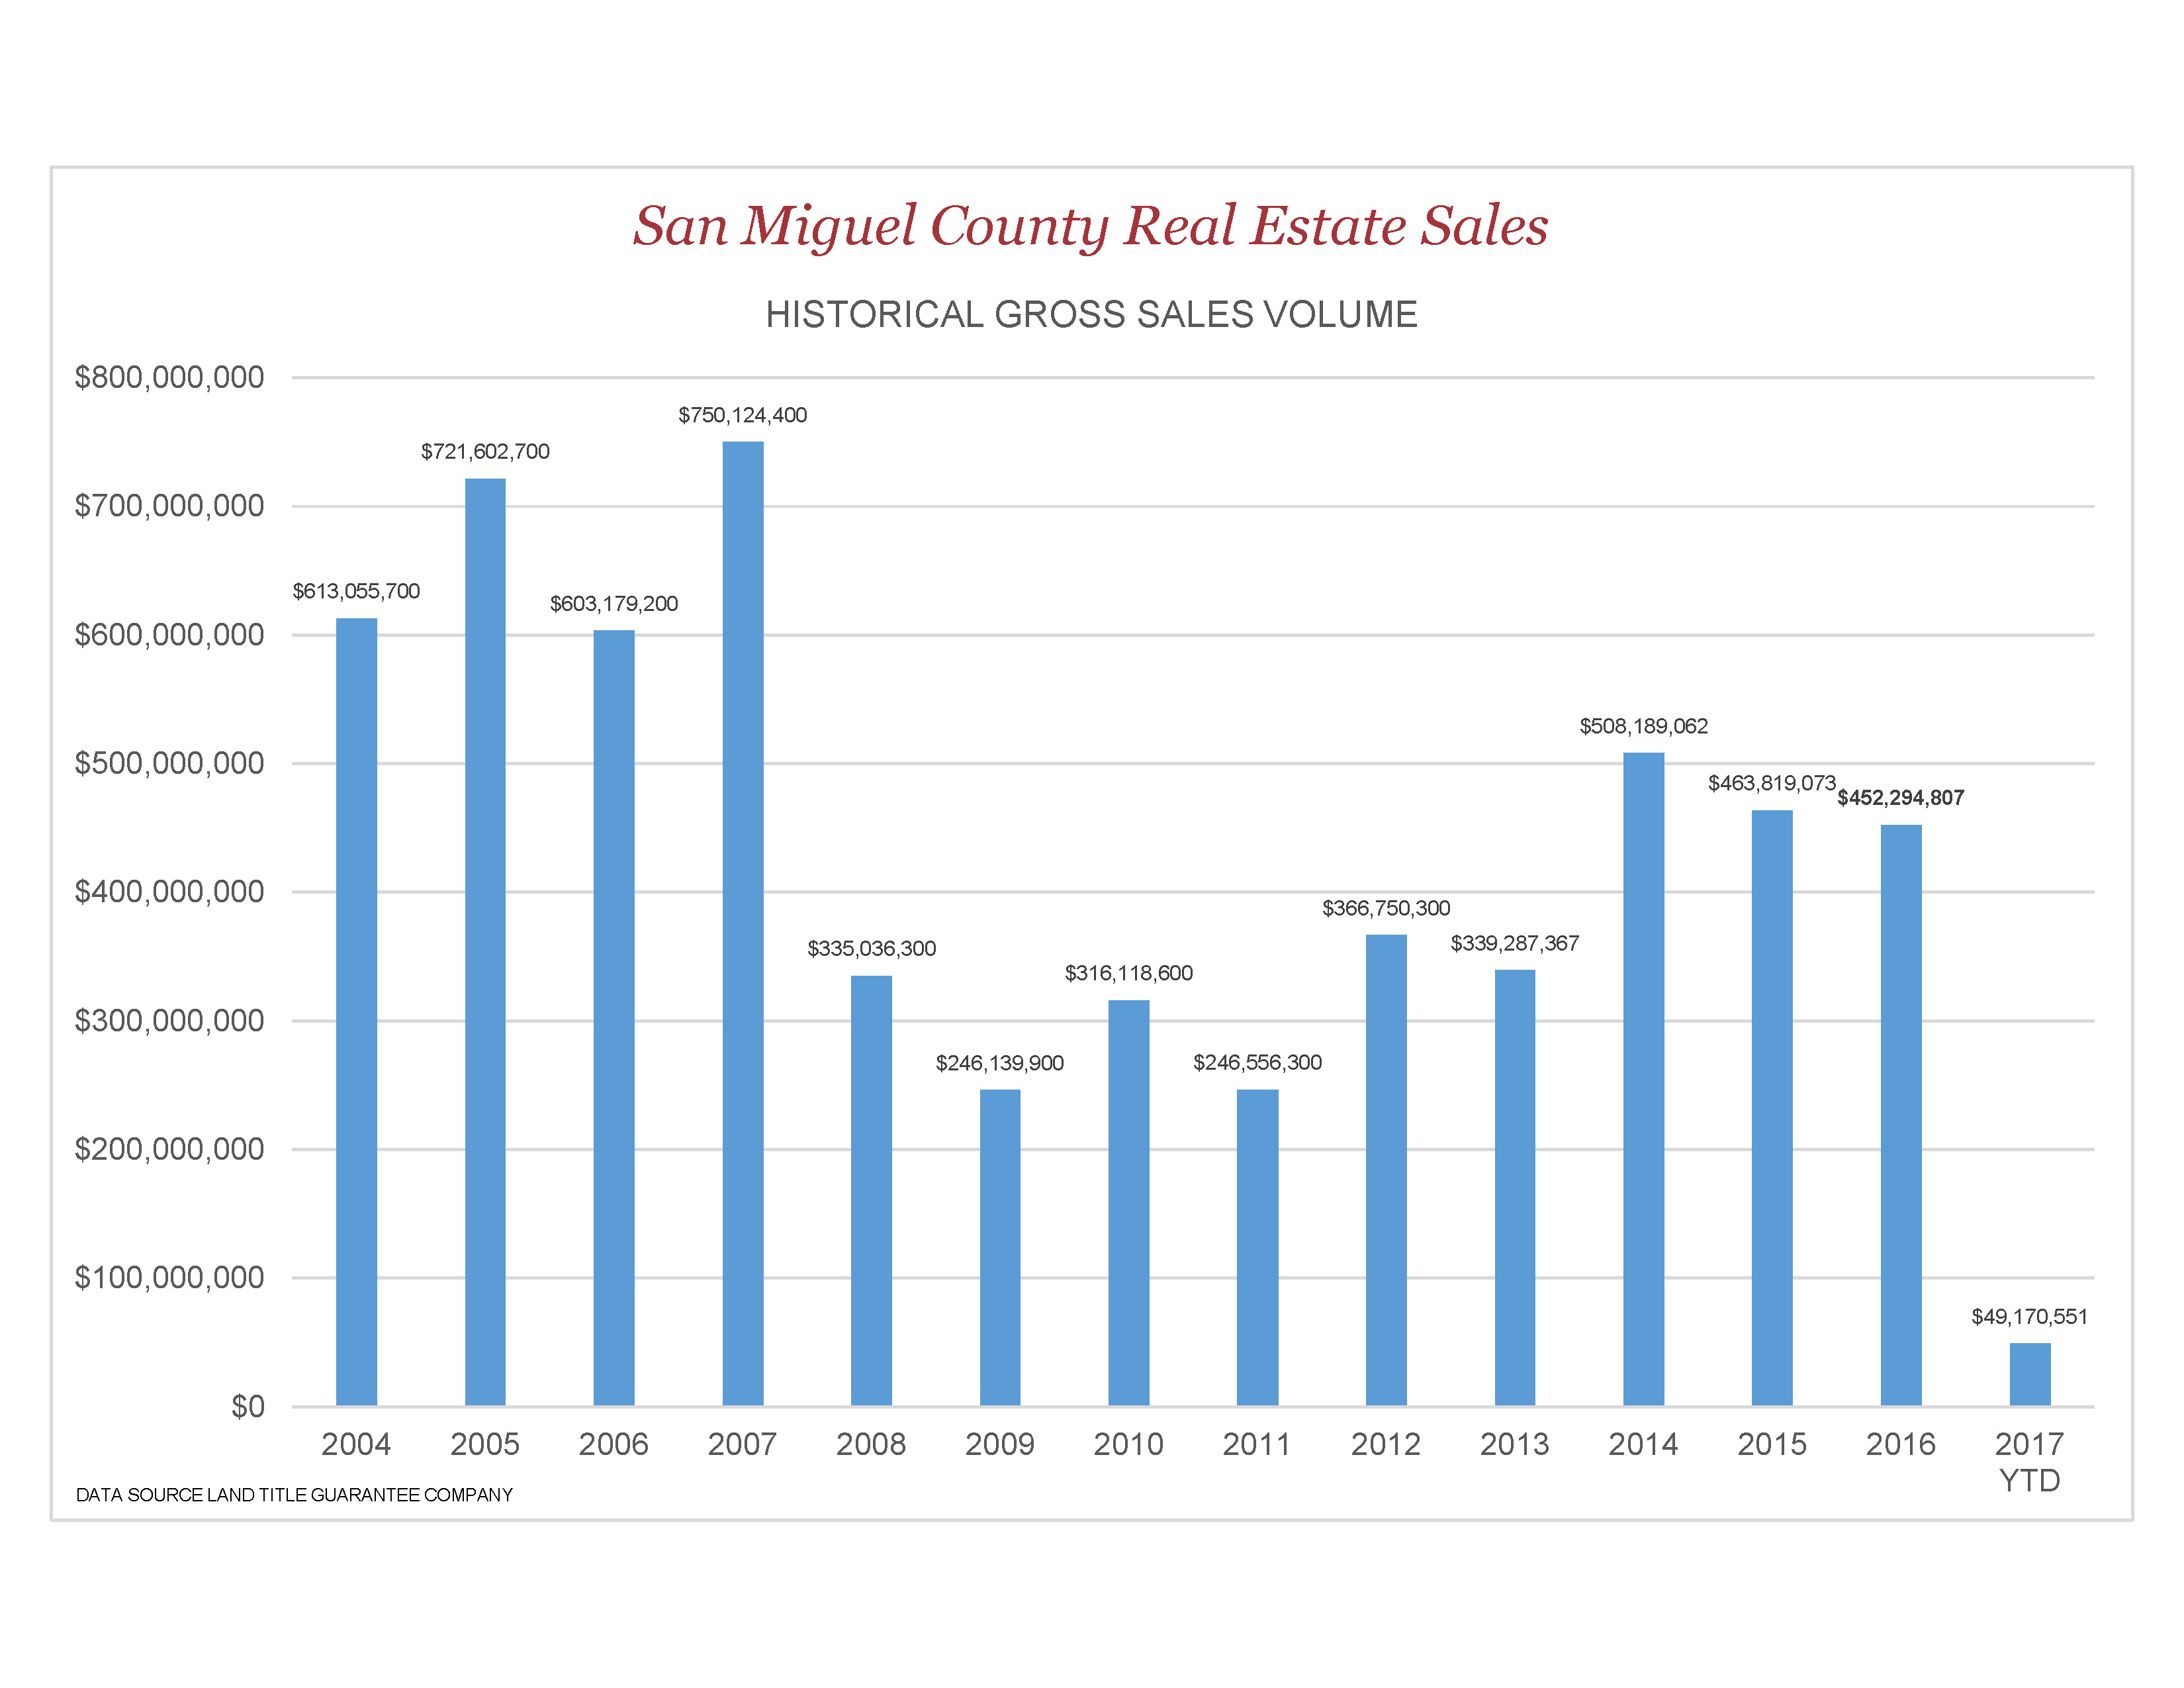 Telluride Area Real Estate Sales Historical Gross Sales Volume-courtesy of Land Title Guarantee Company